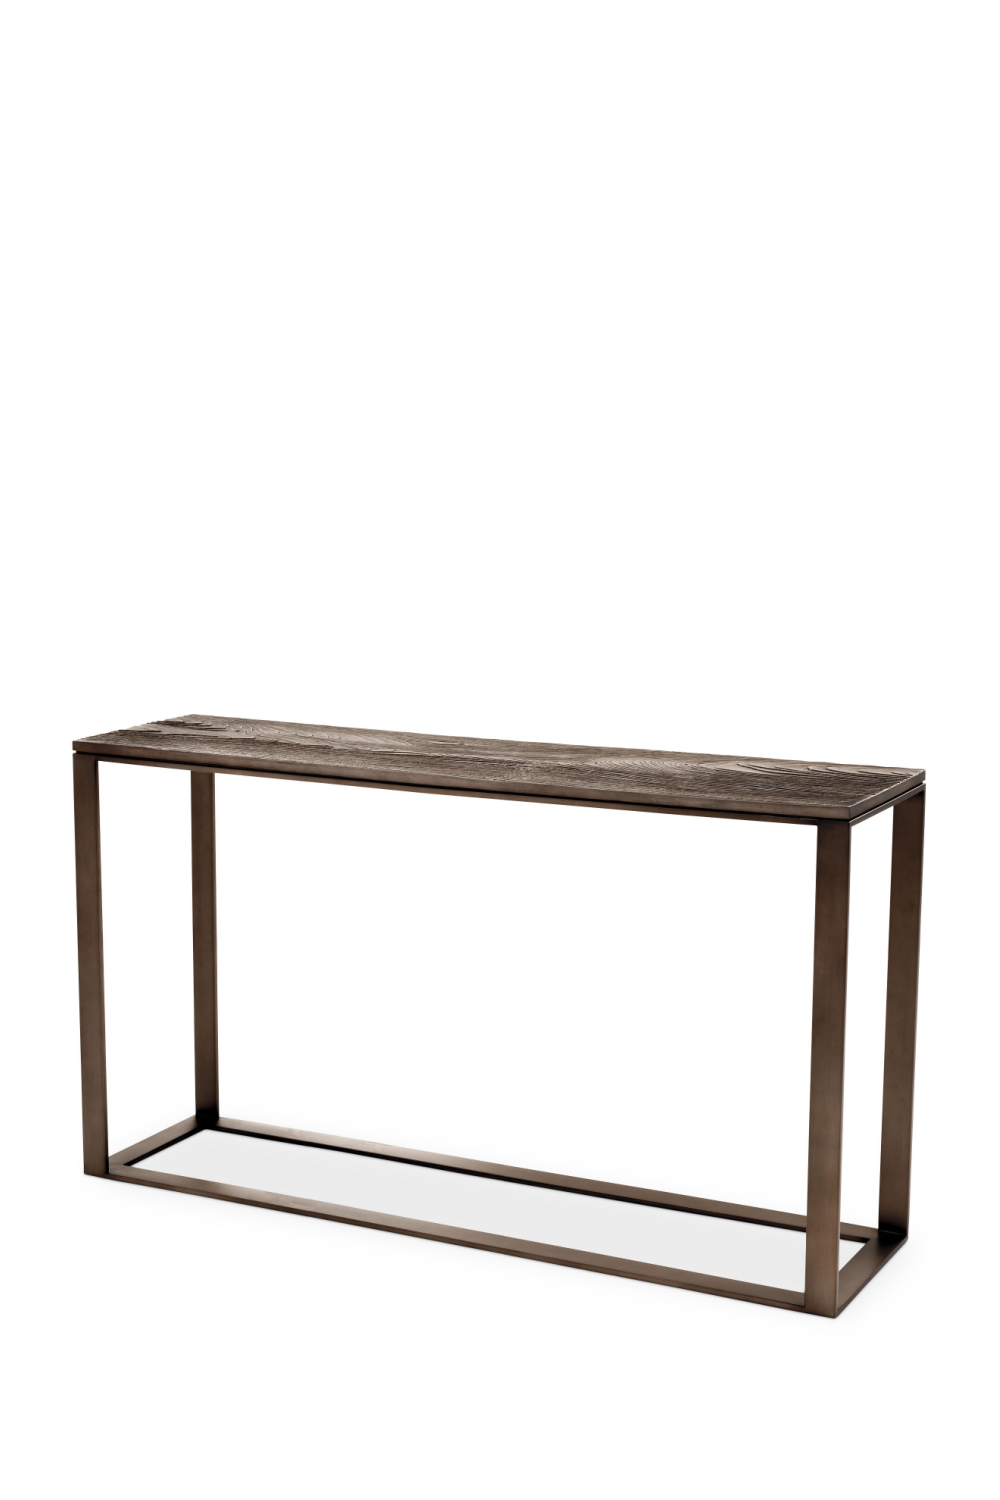 Box Frame Console Table | Eichholtz Zino | Woodfurniture.com